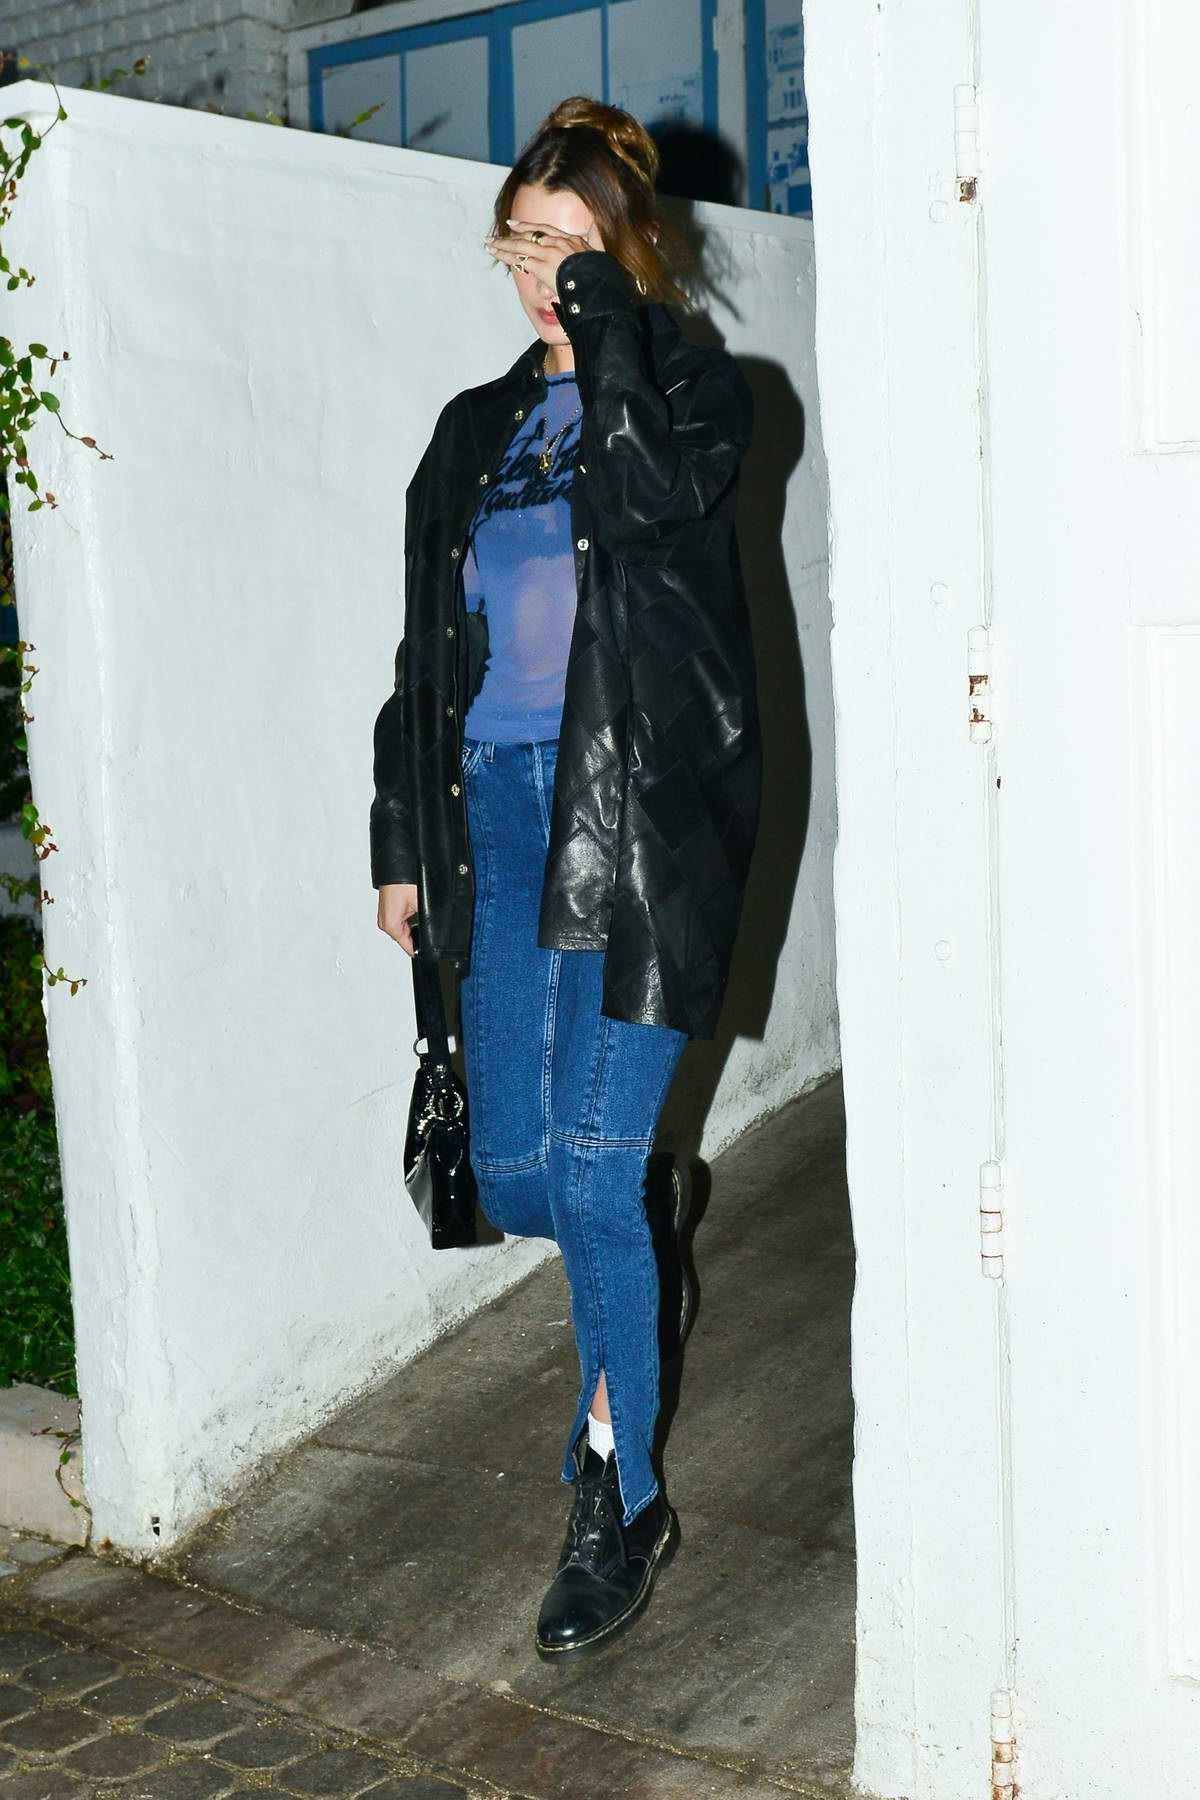 Bella Hadid and The Weeknd head out for a dinner date at Taverna Tony in Malibu, California